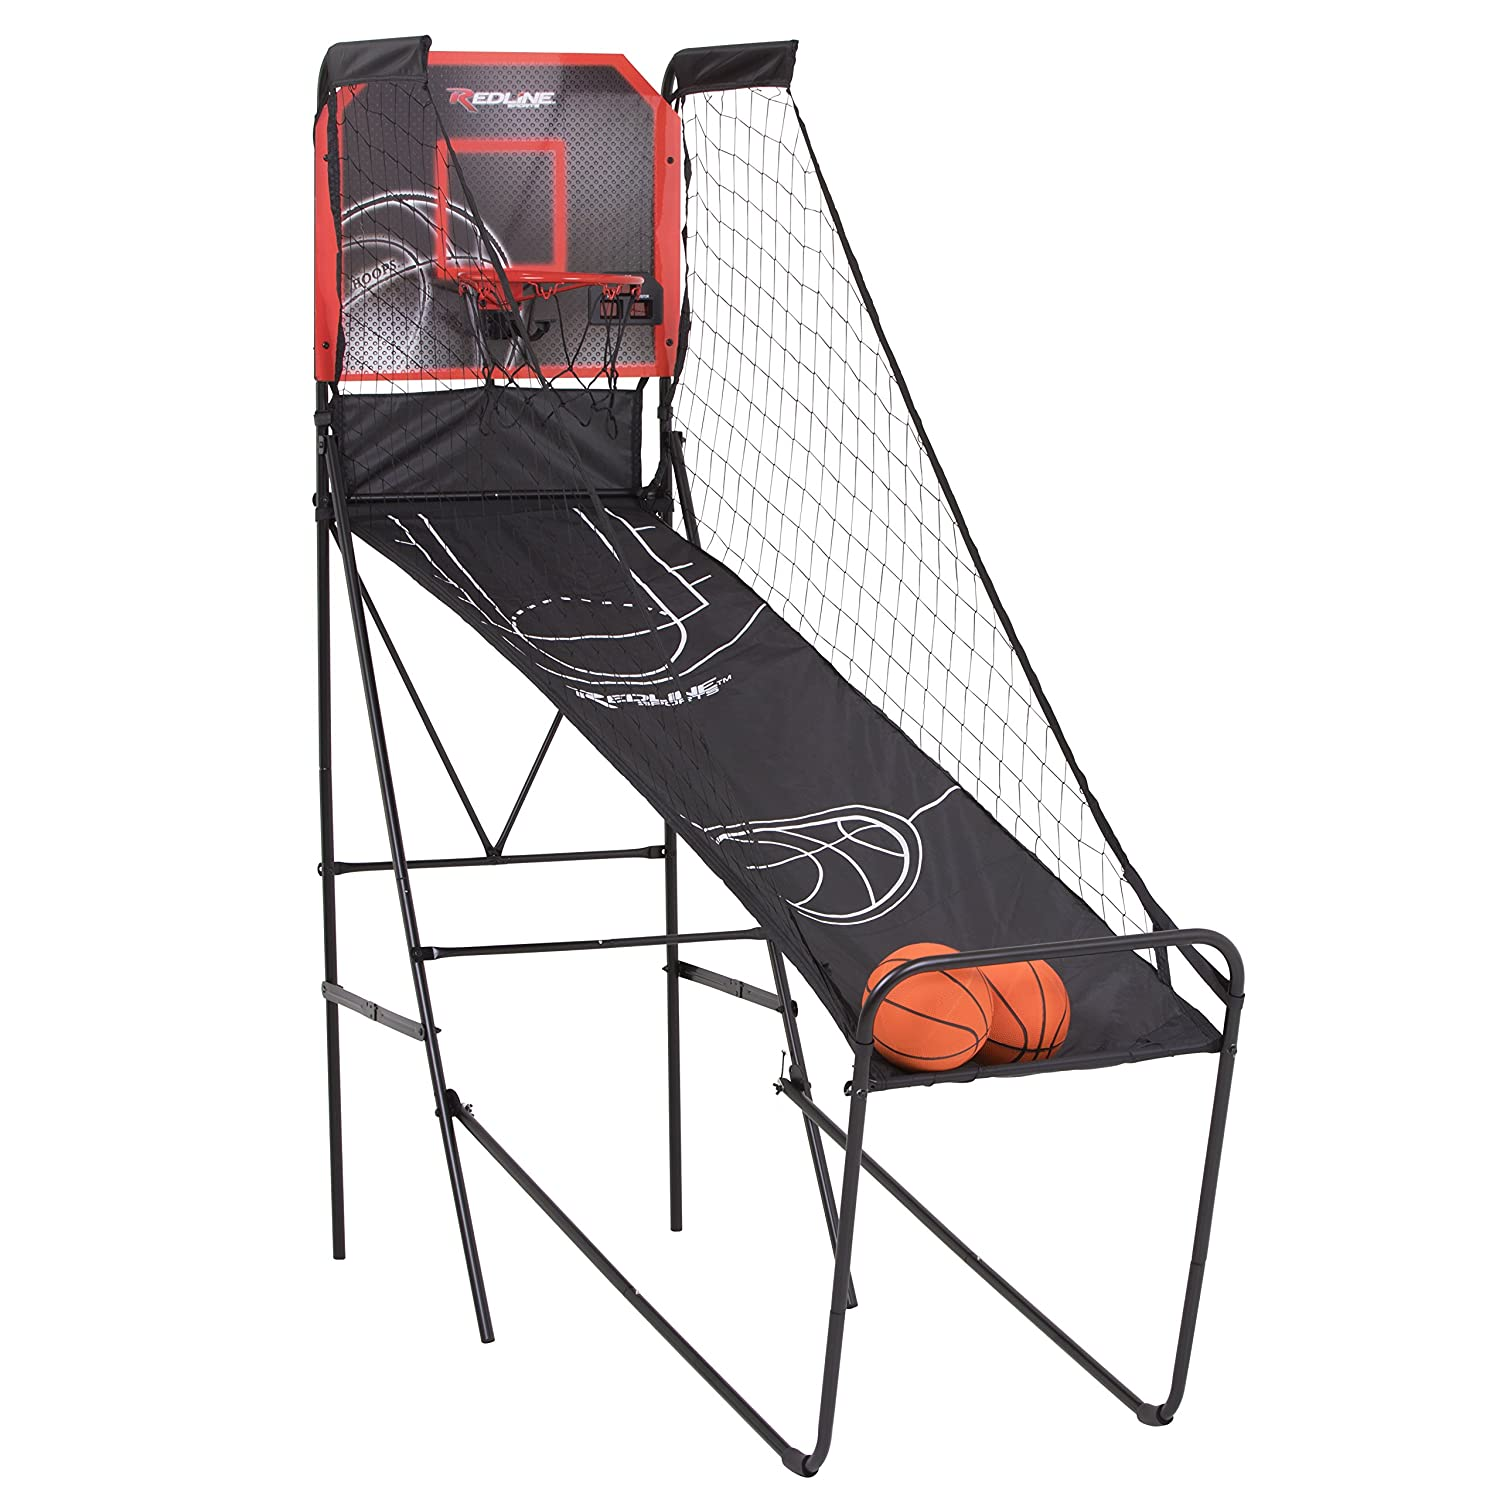 Redline Alley-Oop Single Basketball Shootout with Quick Connect Easy-to-Assemble Frame and Compact Fold-up Design for Easy Storage ESCALADE SPORTS - DROPSHIP M01484W